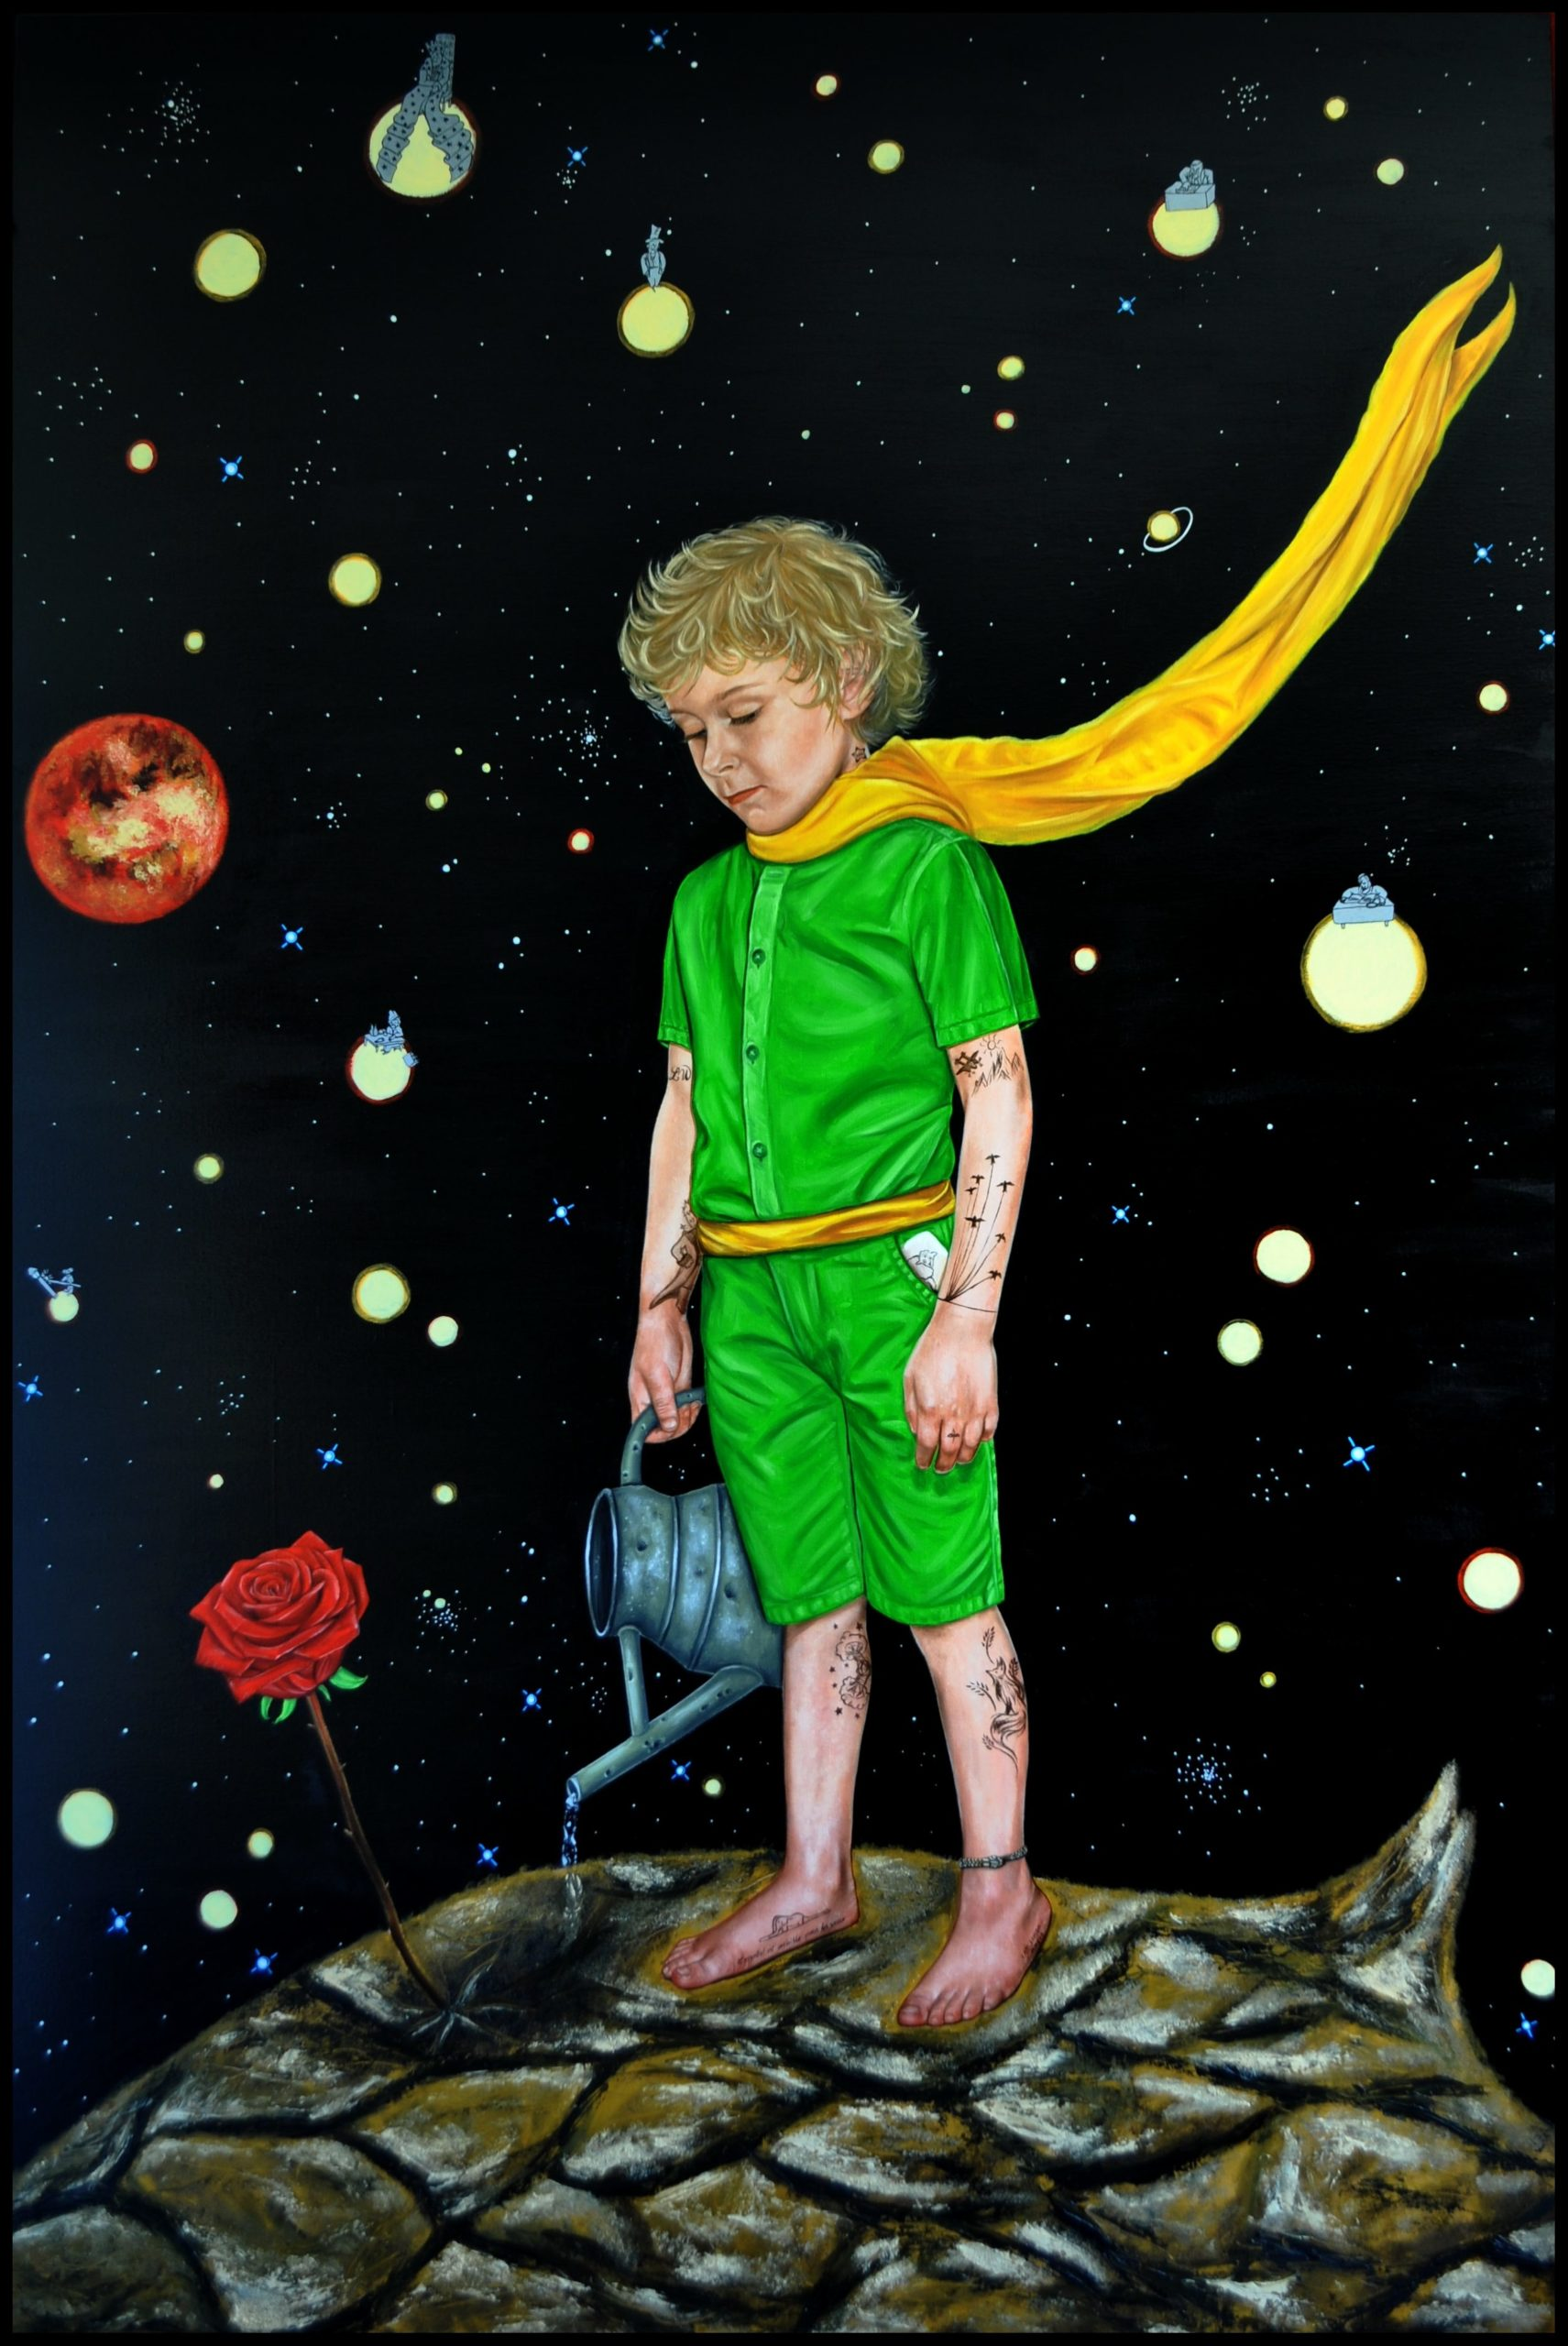 the lil prince painting